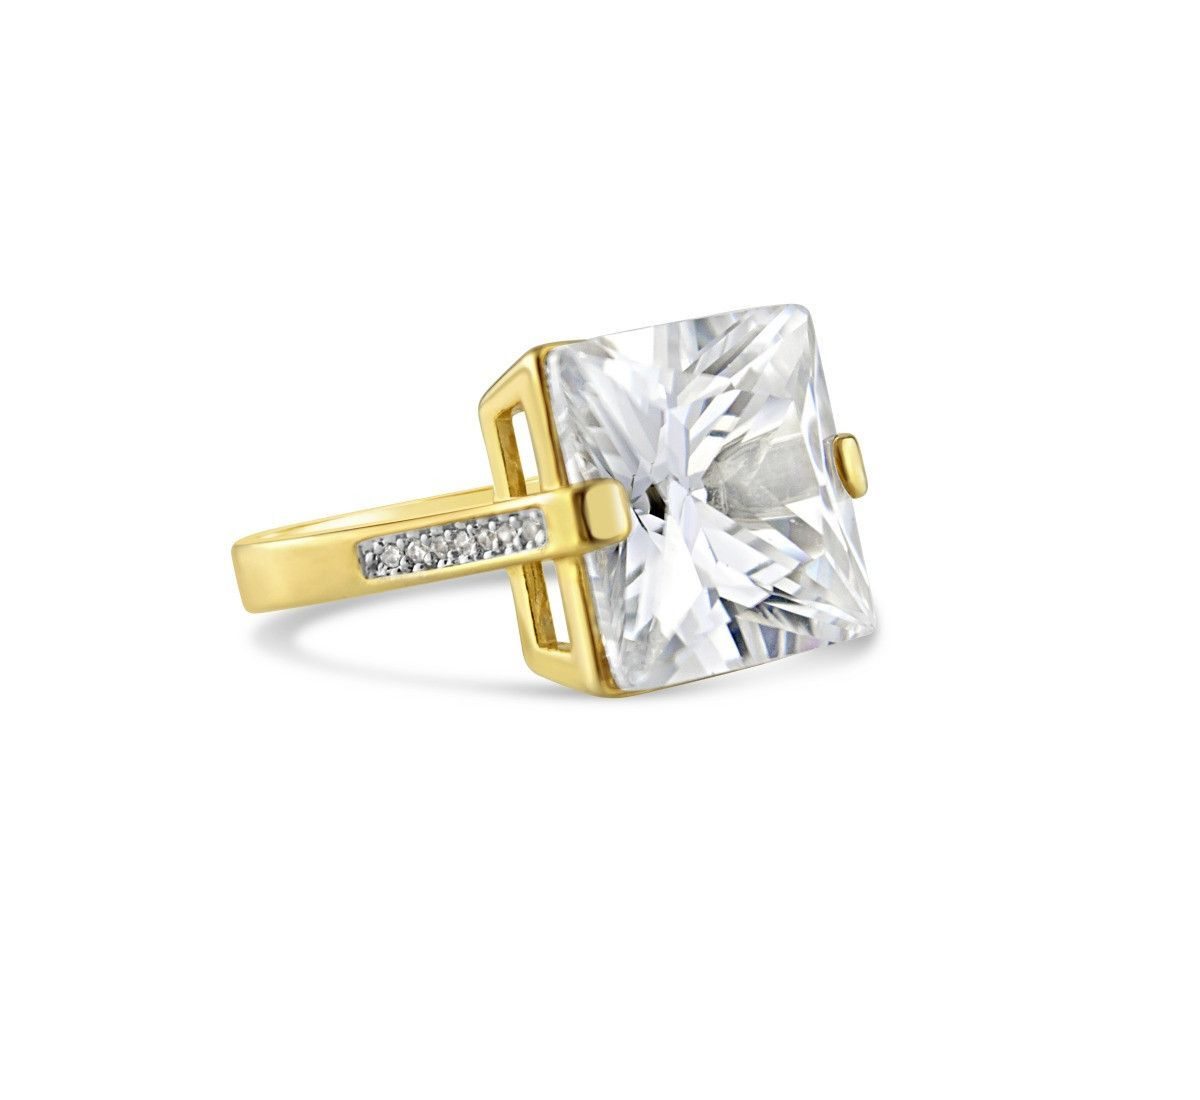 Upgrade You 18k Yellow Gold-Filled CZ Ring